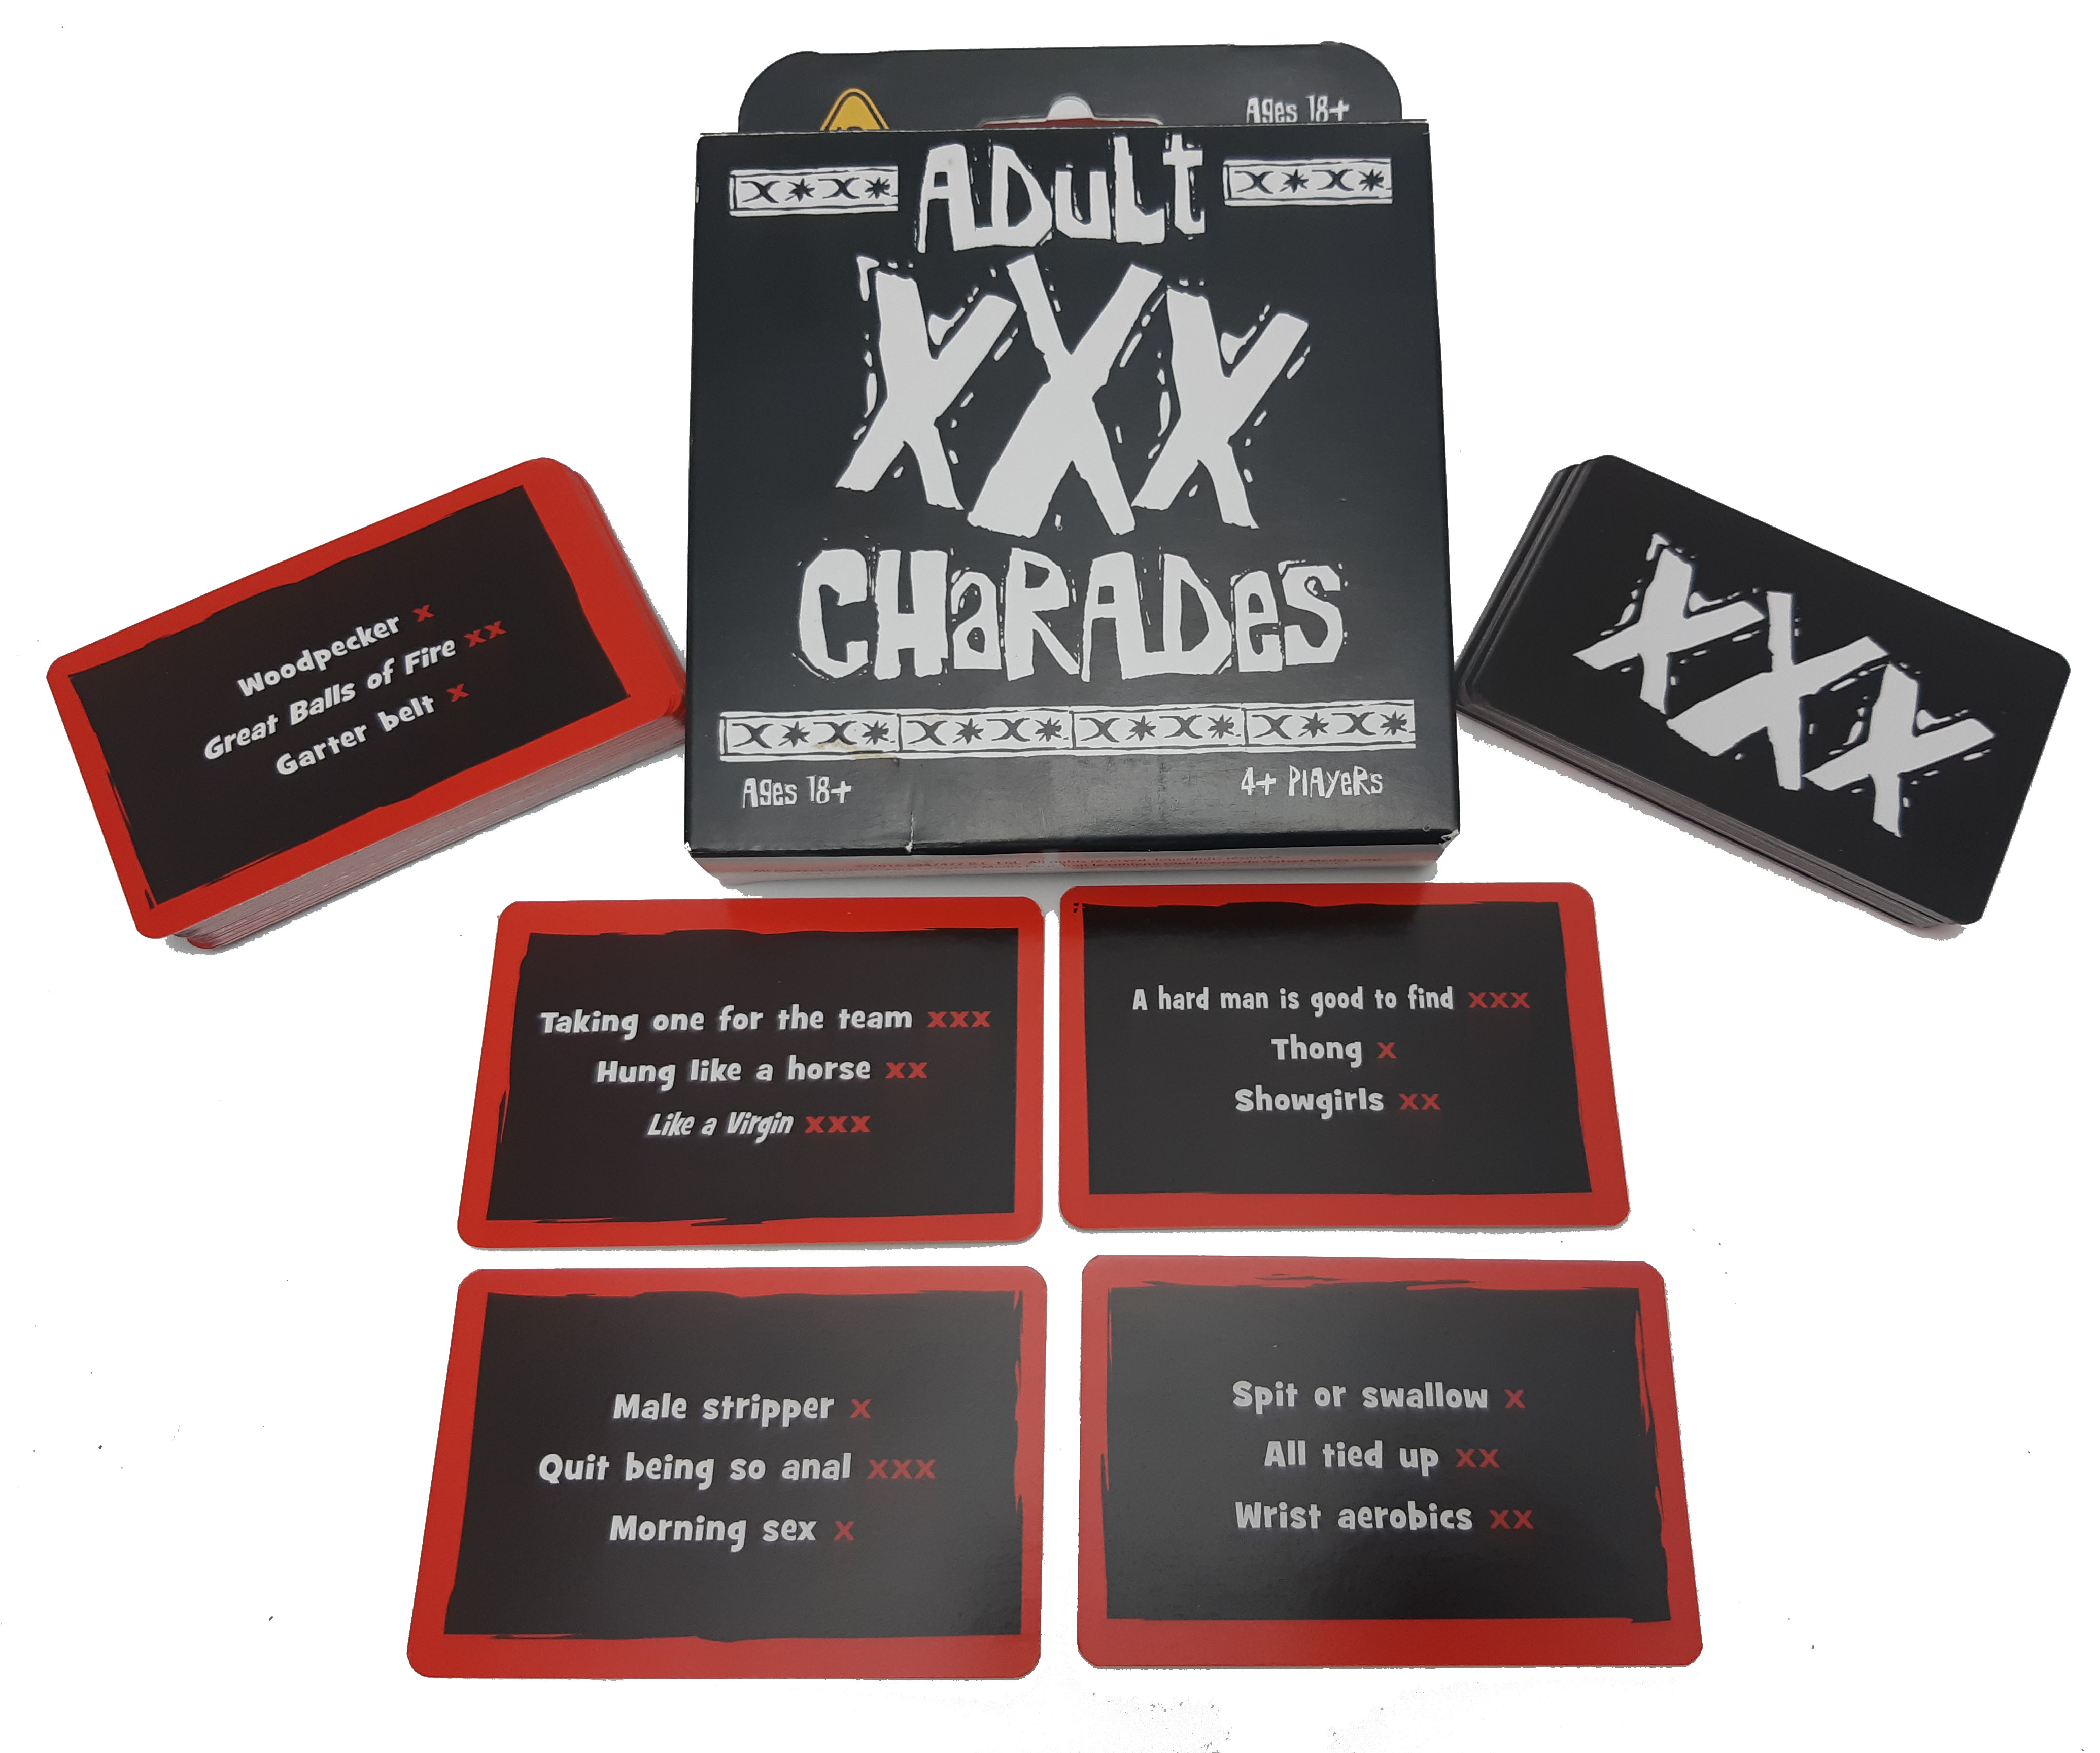 Adult Image Xxx adult xxx charades card game | outset media games